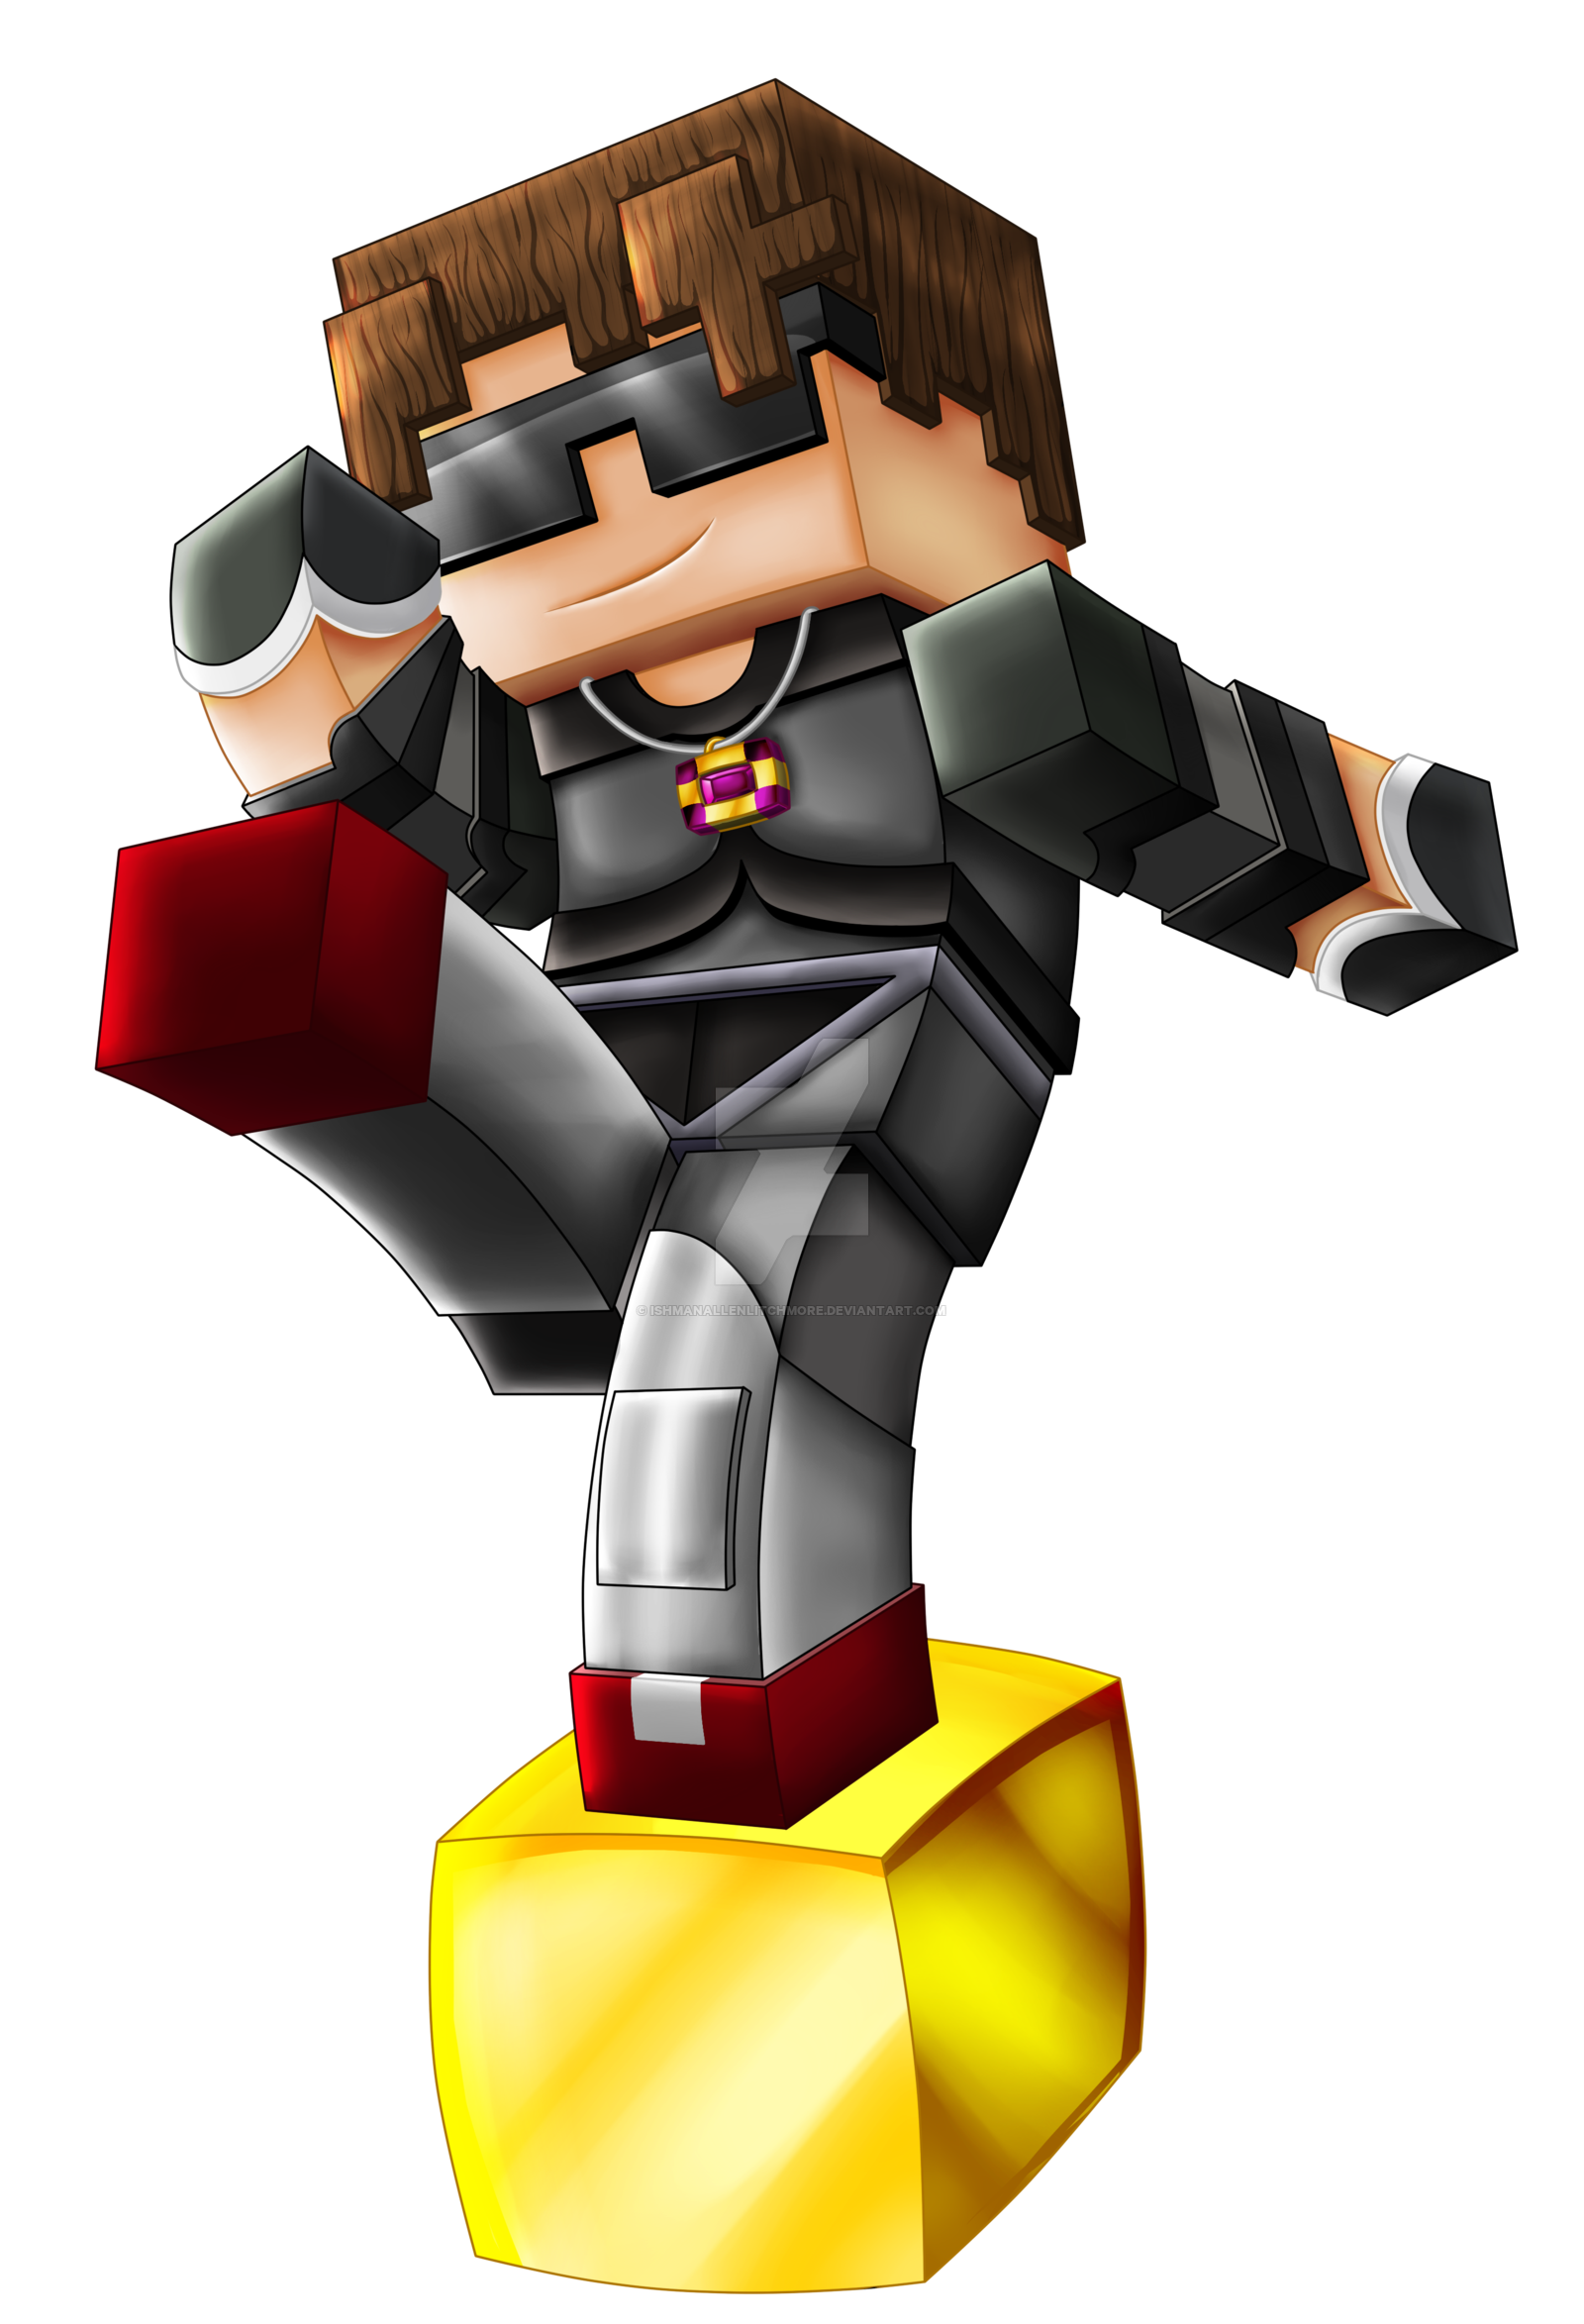 SkyDoesMinecraft Fan Art (This is NOT mine!) | MINECRAFT ...